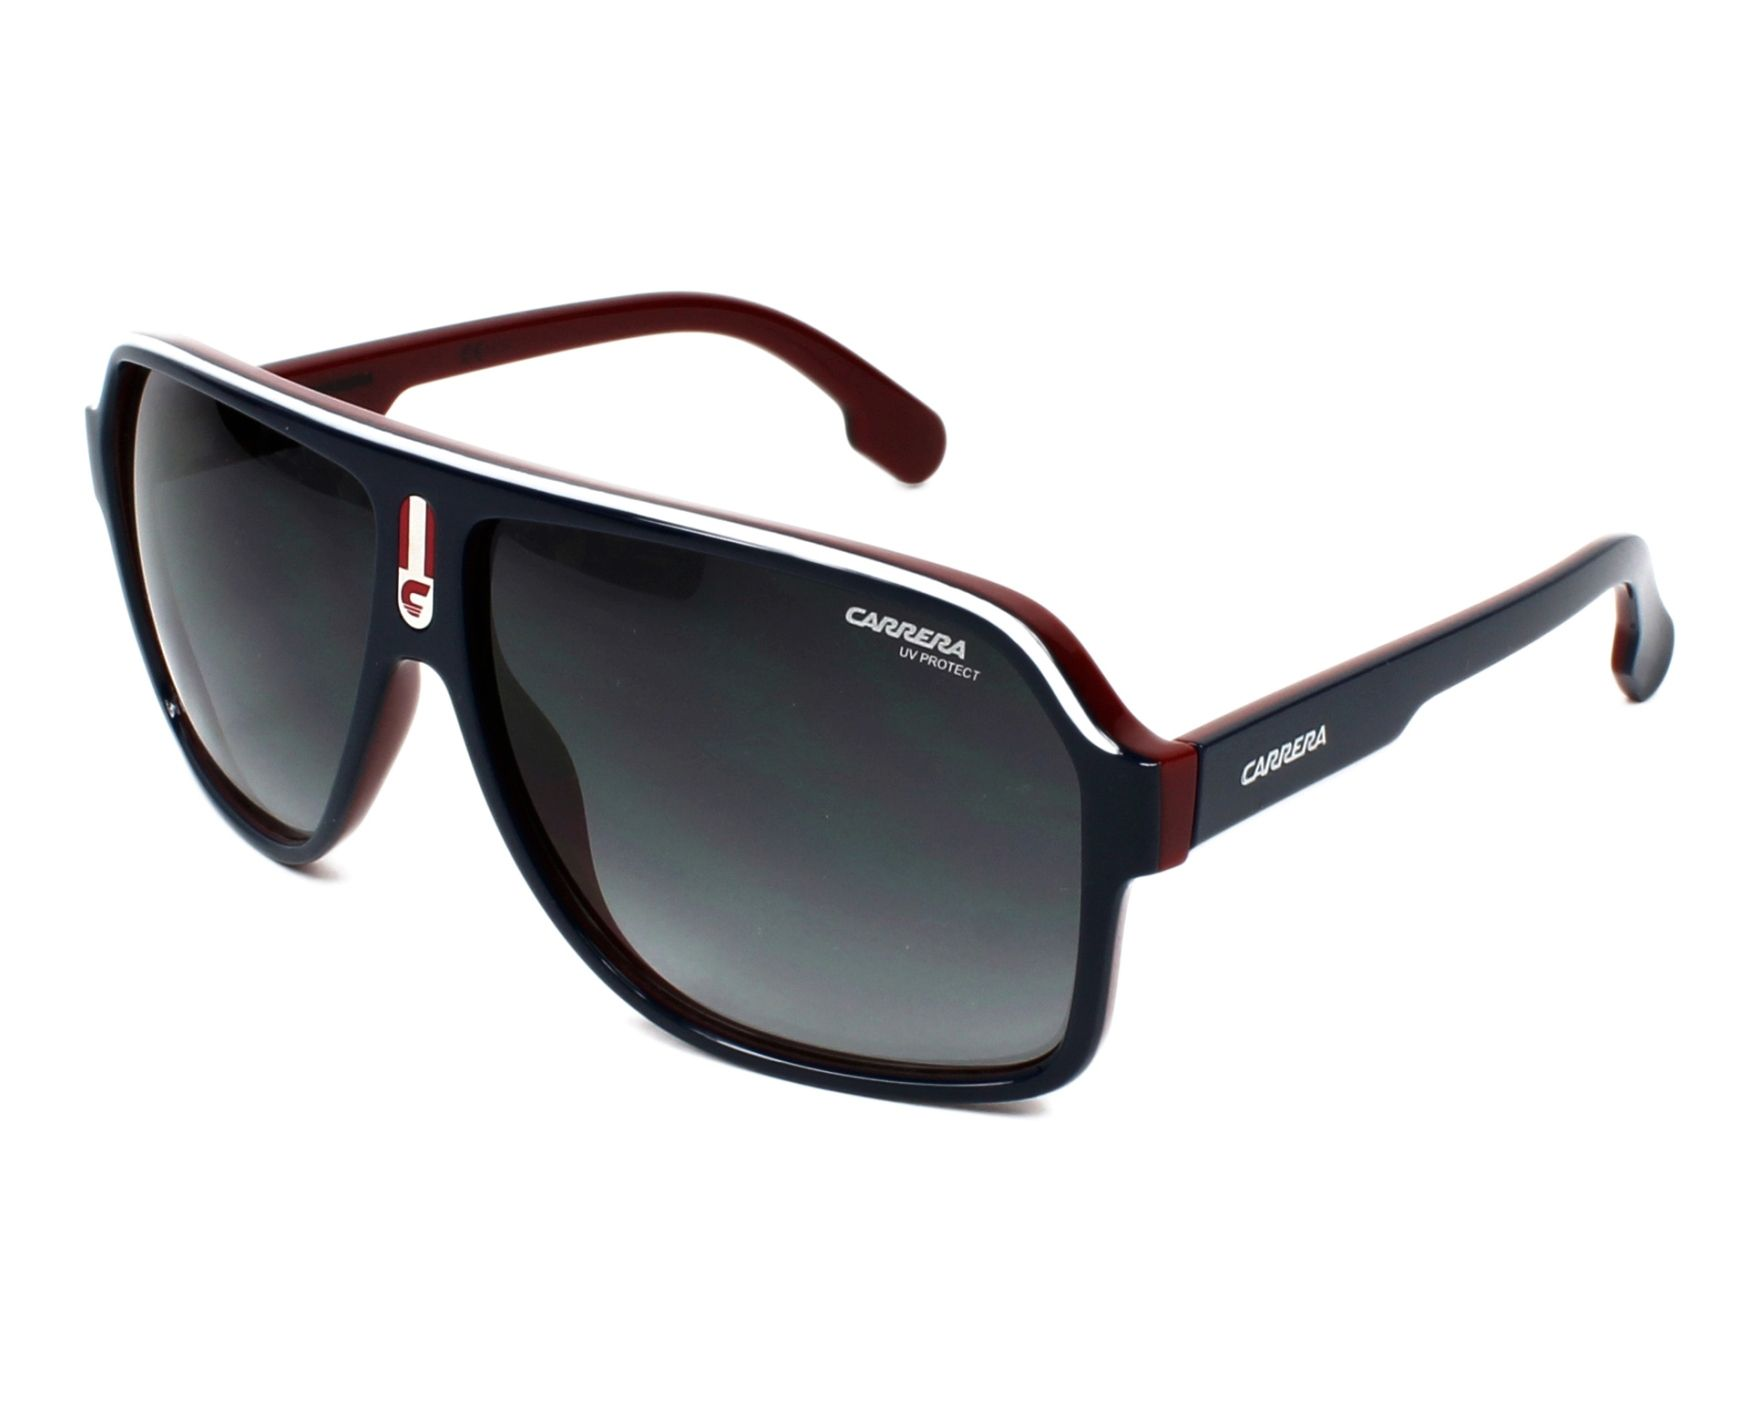 Sunglasses Carrera 1001-S 8RU 9O 62-11 Blue Bordeaux profile view 412c4e18ecc2